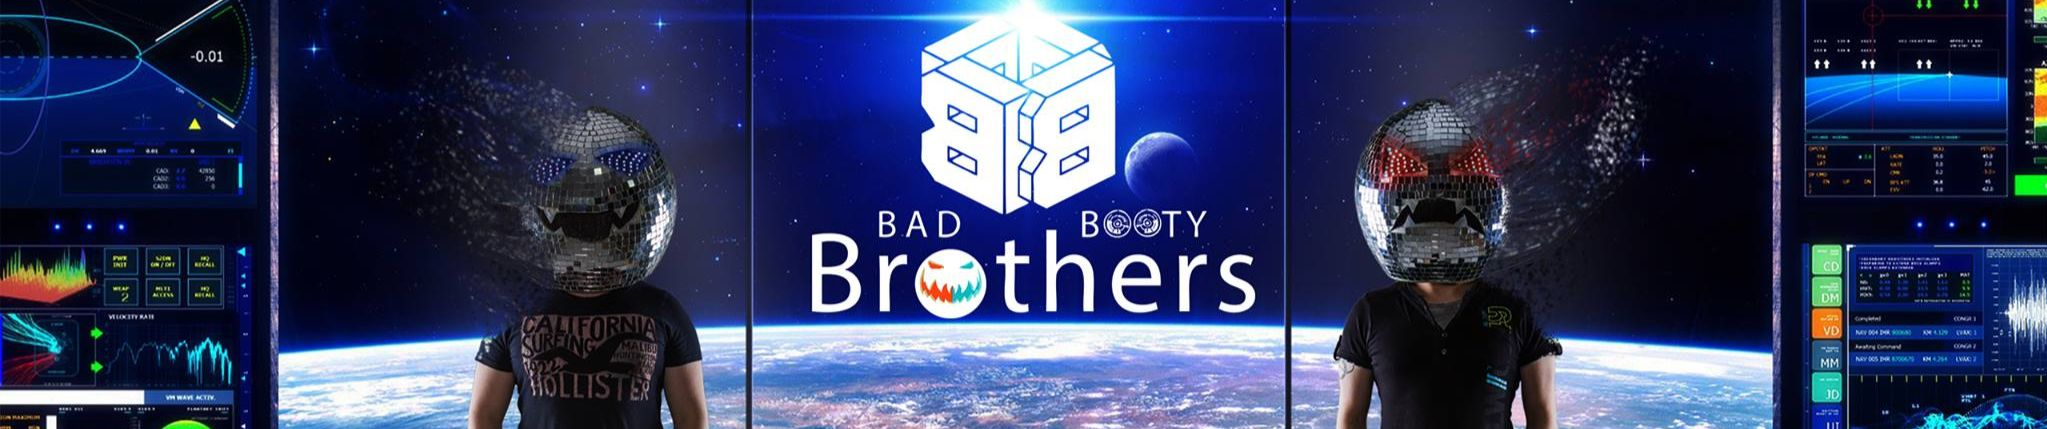 1.) booty invasion vol.1bad booty brothers | free listening on